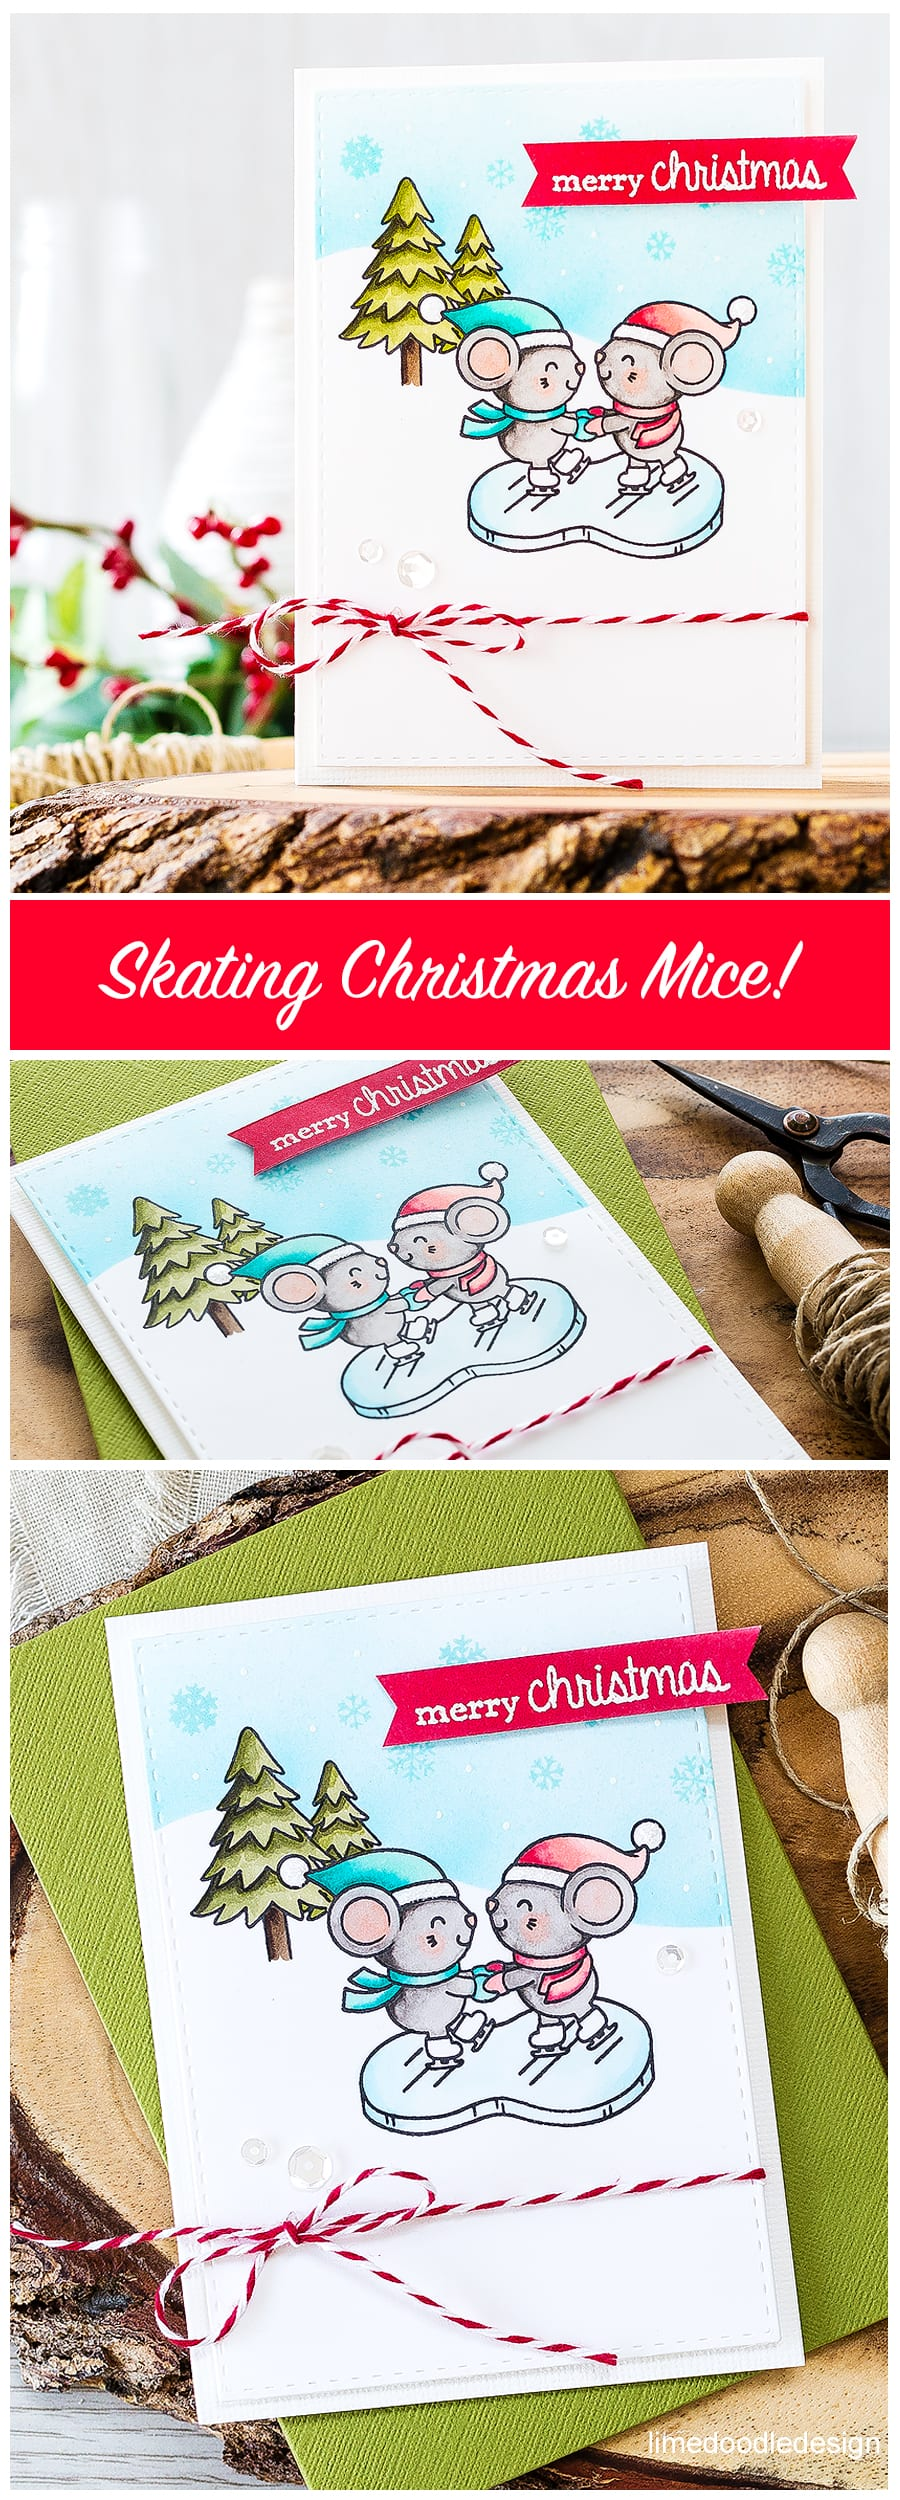 Ice Skating Mice! Find out more about this card by clicking on the following link: http://limedoodledesign.com/2016/09/ice-skating-mice/